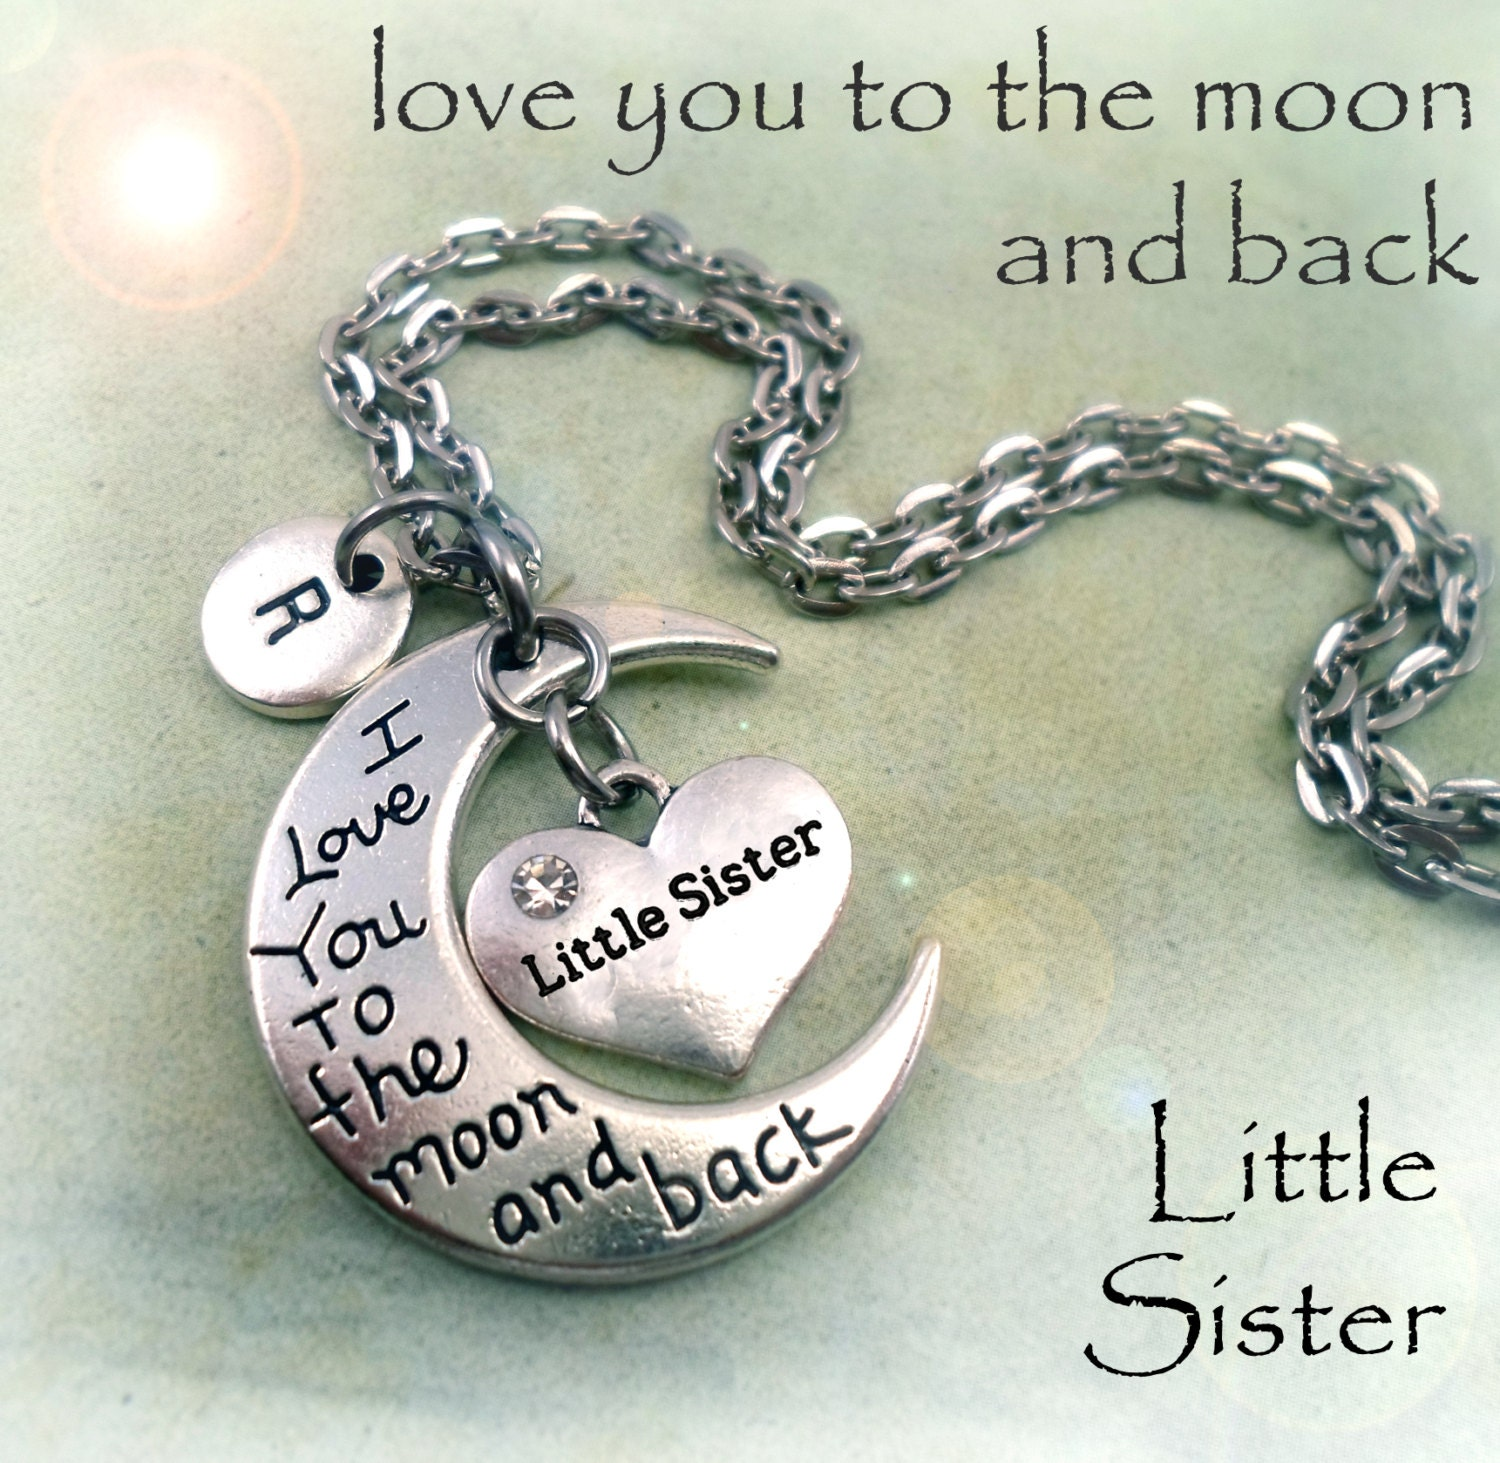 Love You Sis Hawa: Little Sister I Love You To The Moon And Back By